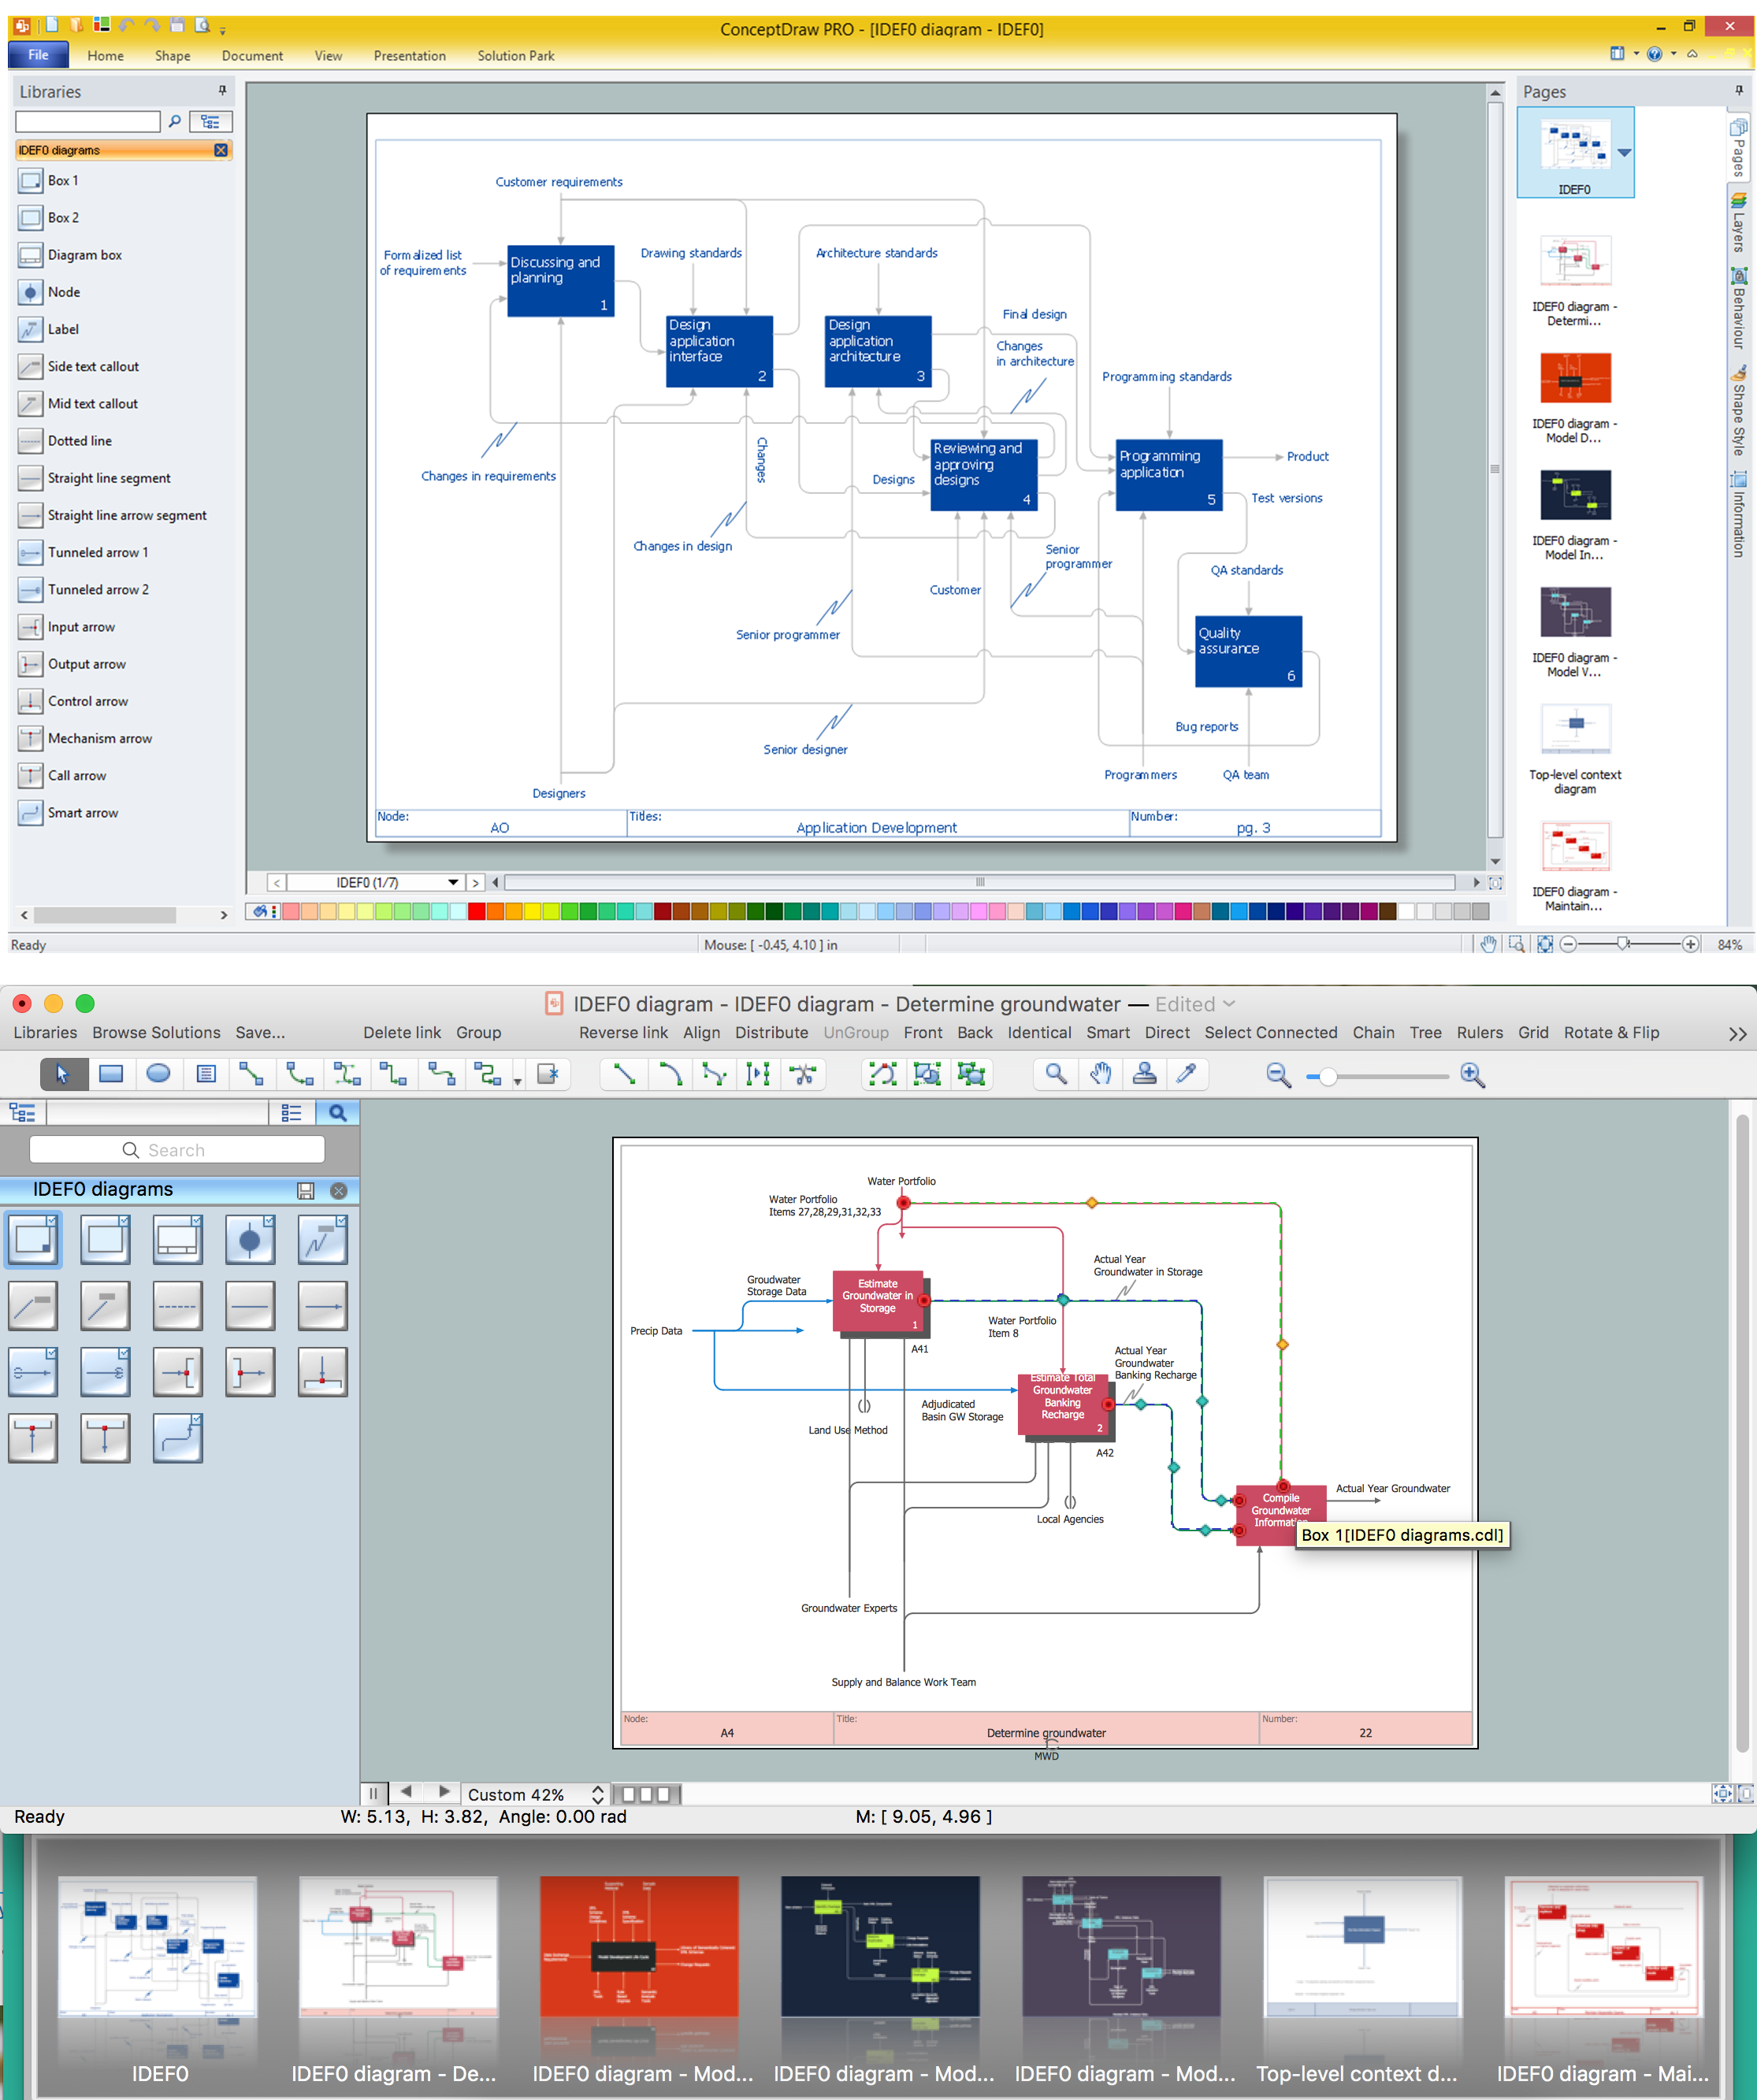 IDEF0 standard with ConceptDraw DIAGRAM *